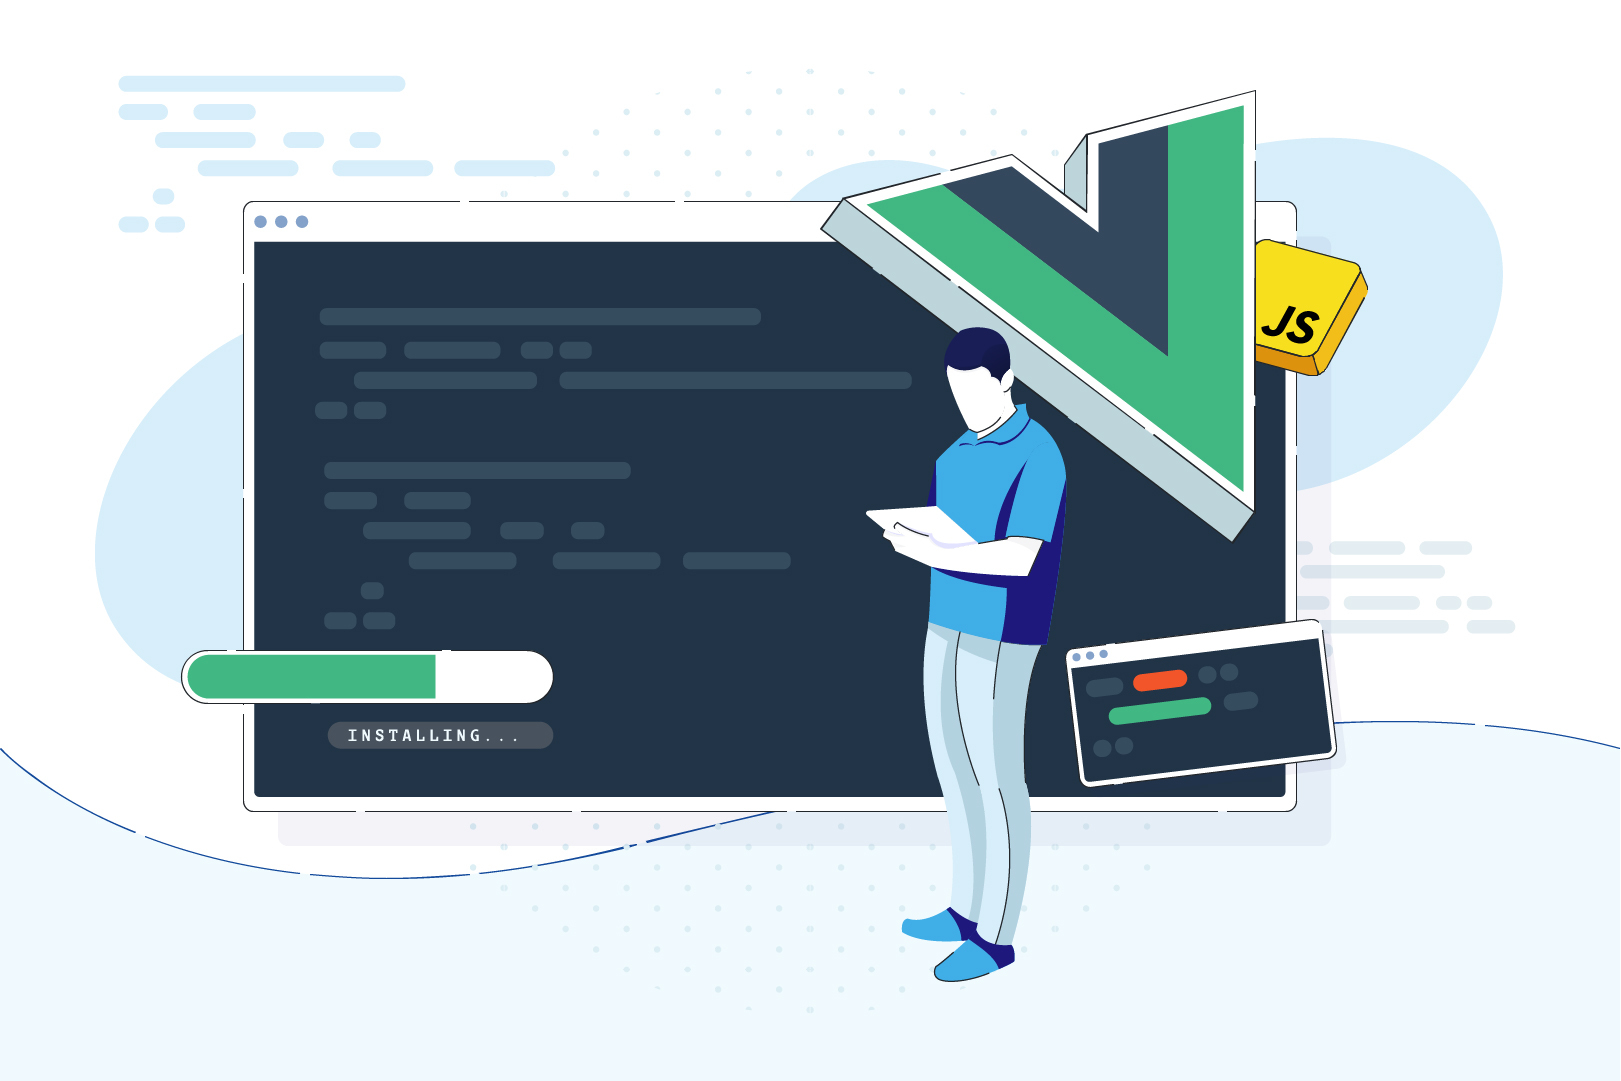 How to quickly bootstrap a Vue 3 project using the new Vue CLI? Install Vue CLI with this guide